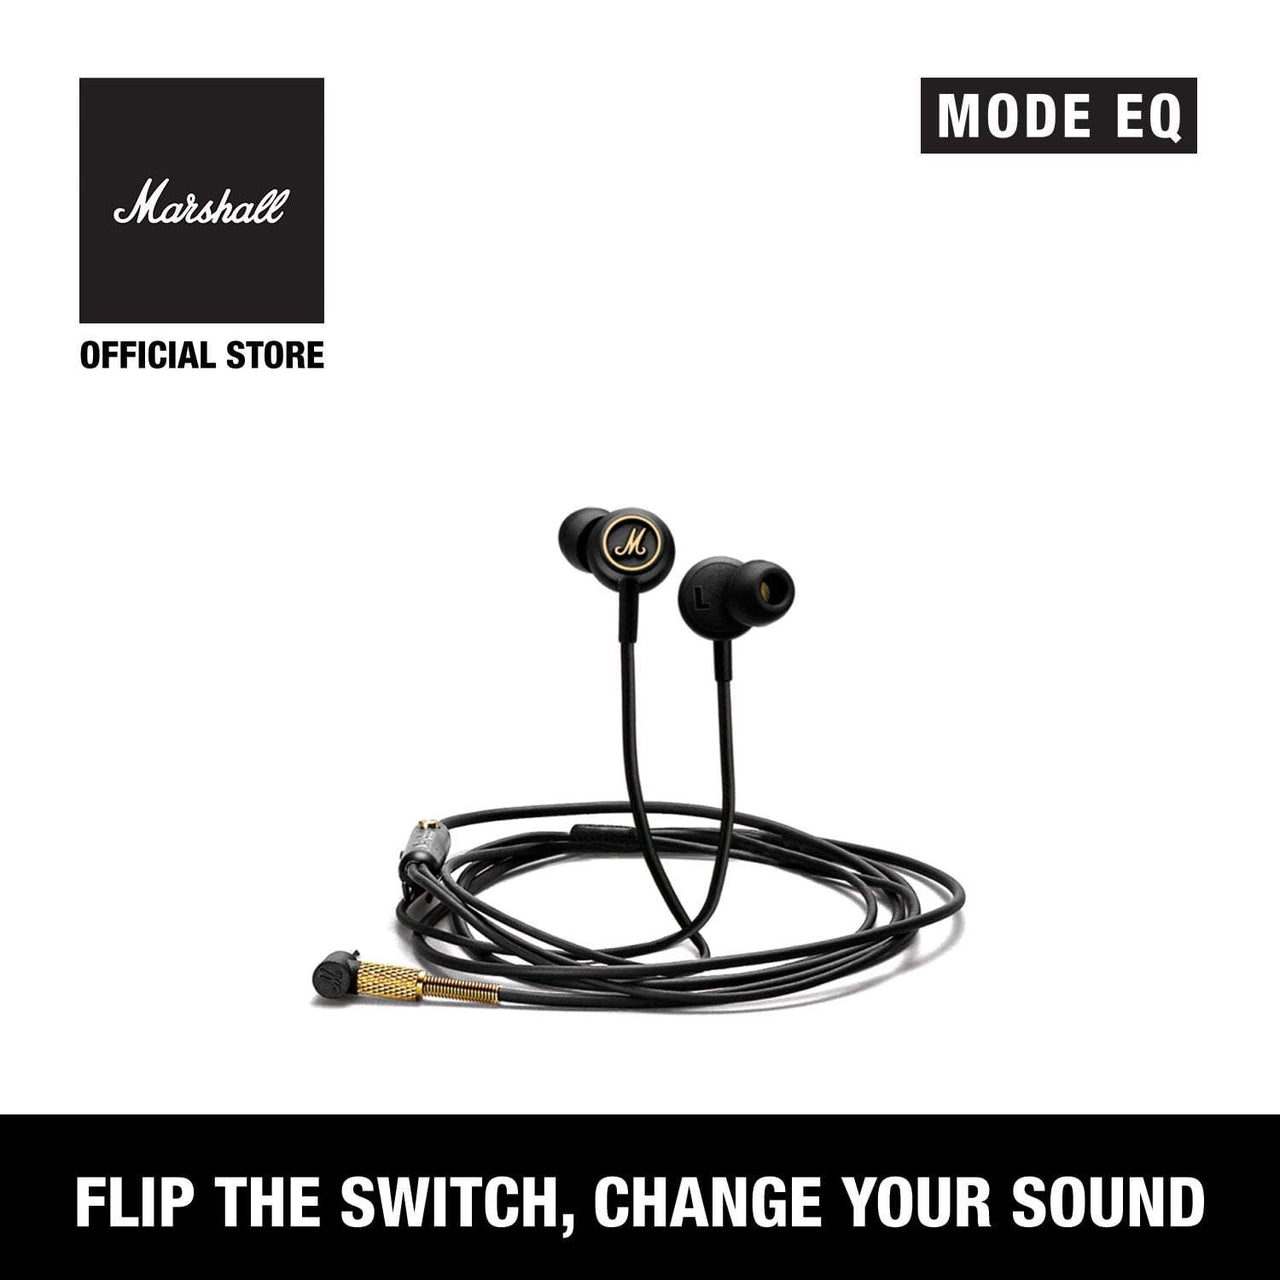 Mode EQ  [Exclusive Partner], Headphones, Marshall Headphones, ASH Asia